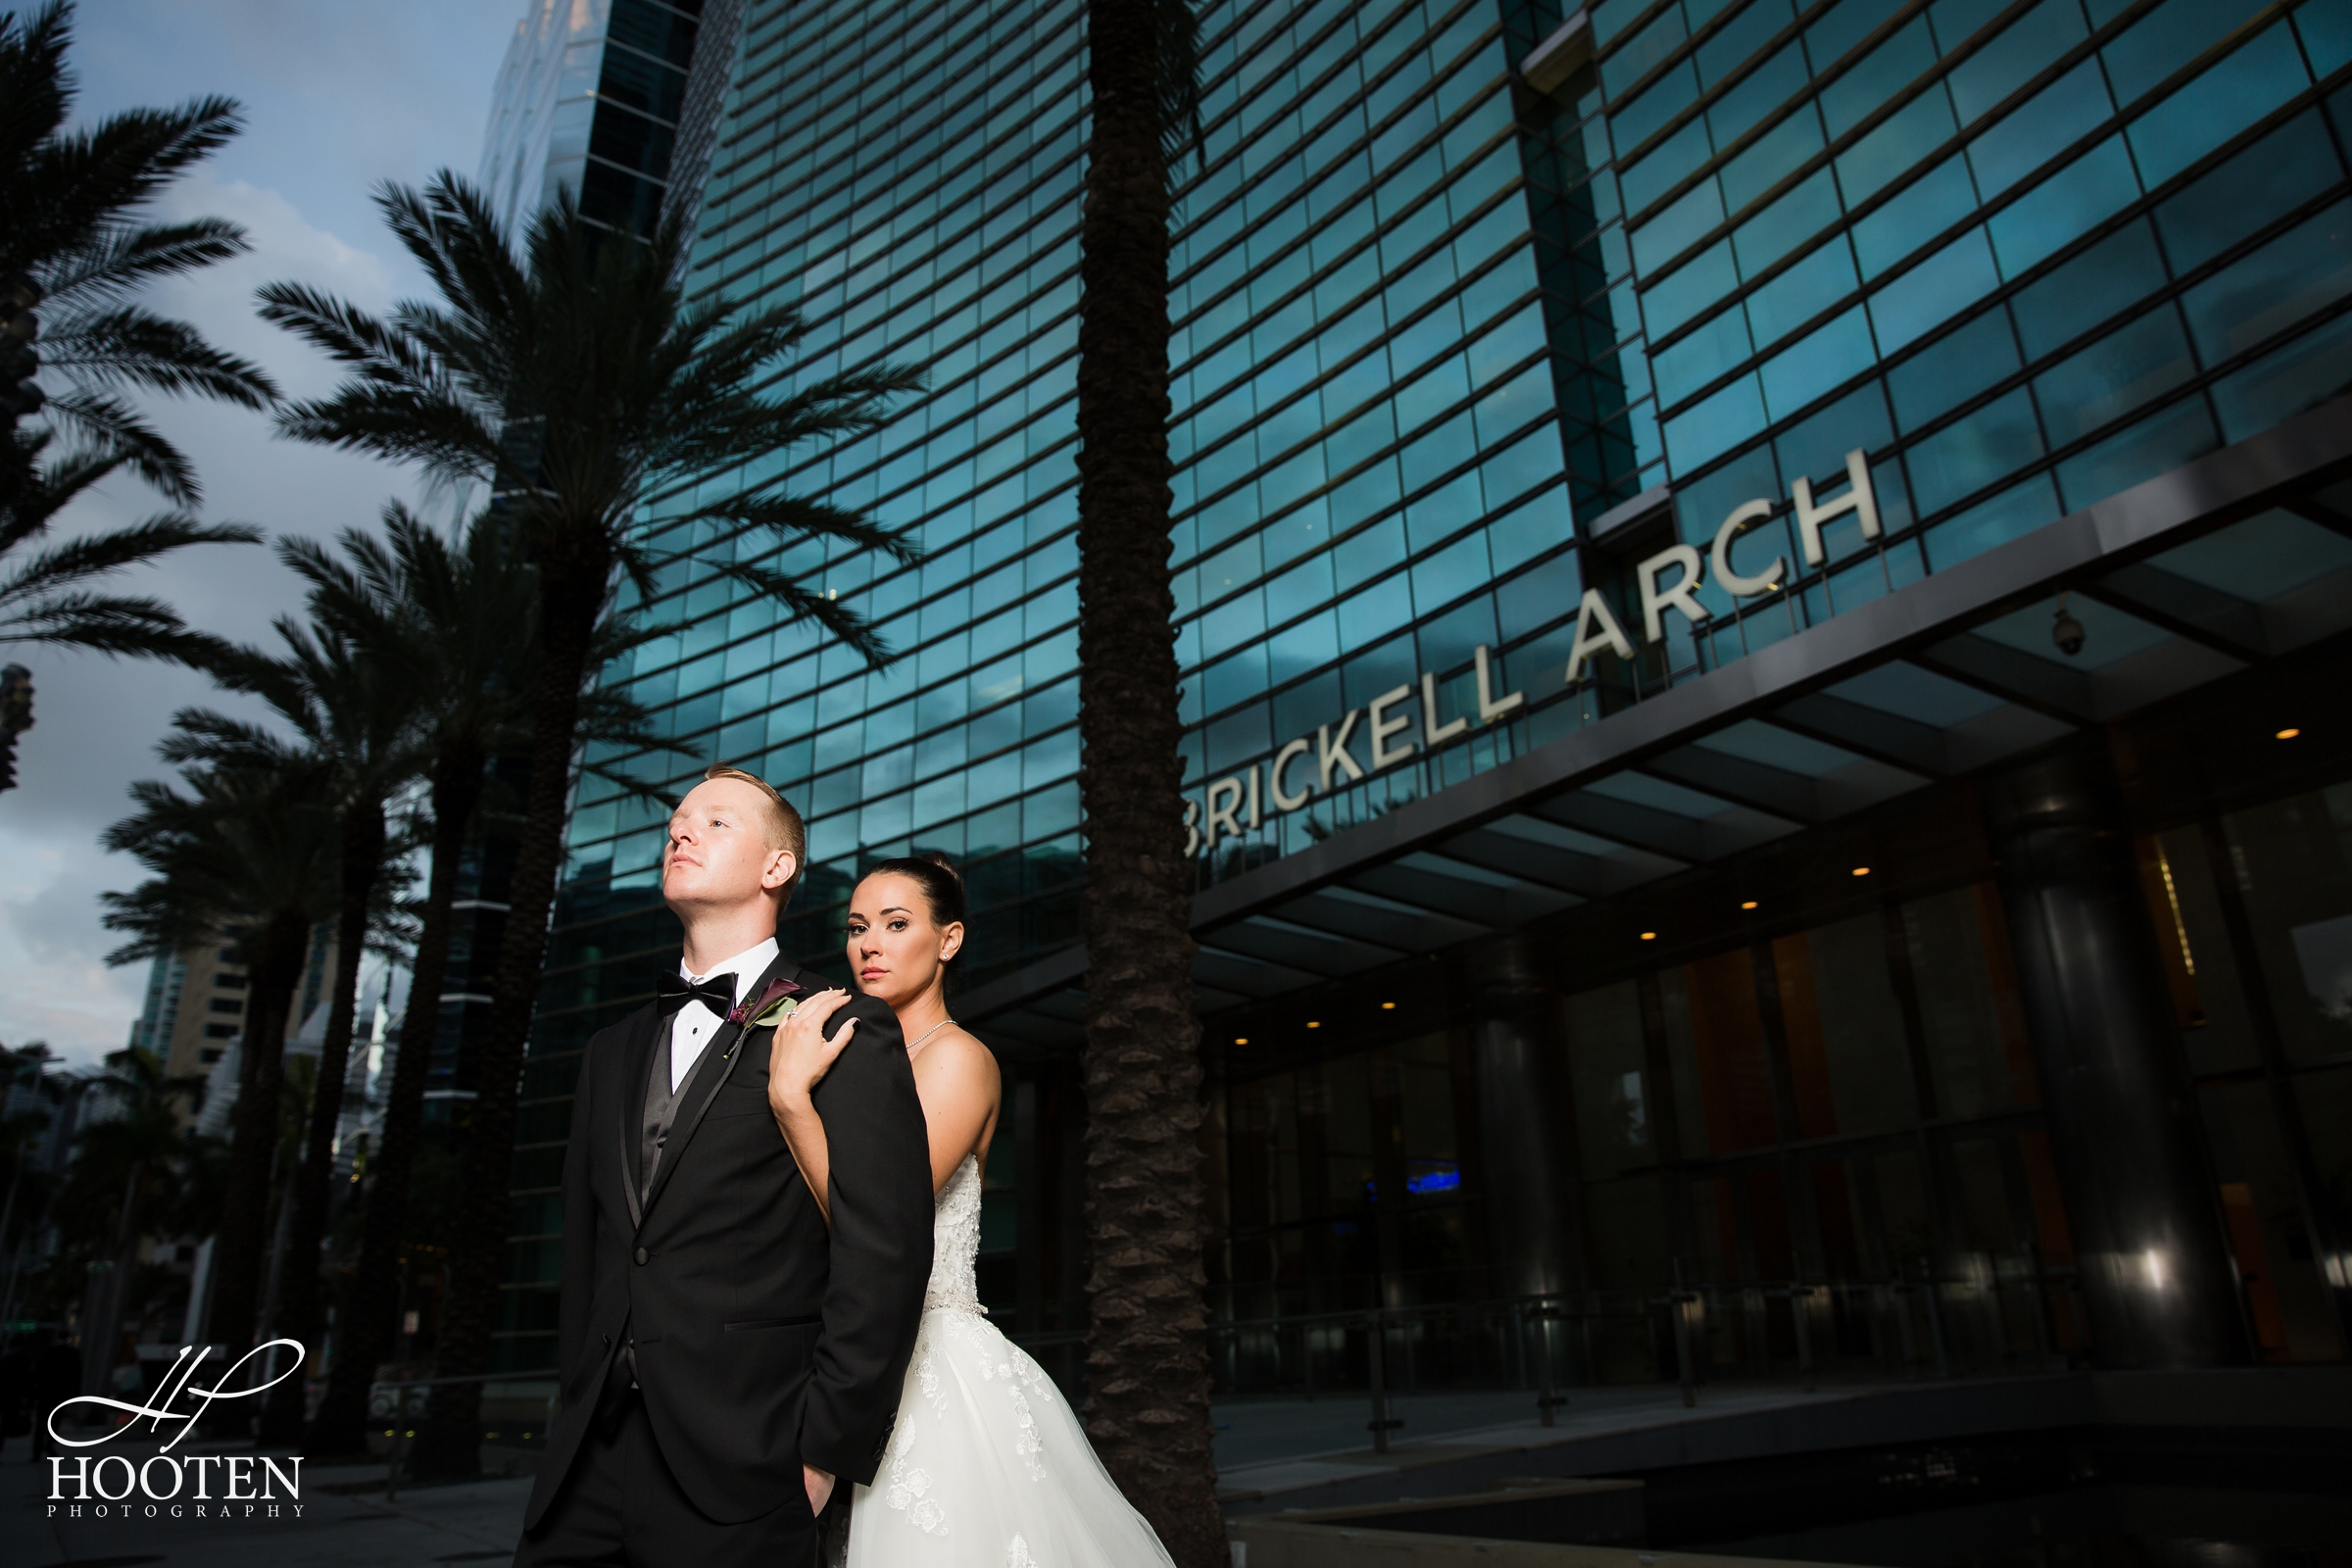 067.Conrad-Miami-Hotel-Wedding-Hooten-Photography.jpg